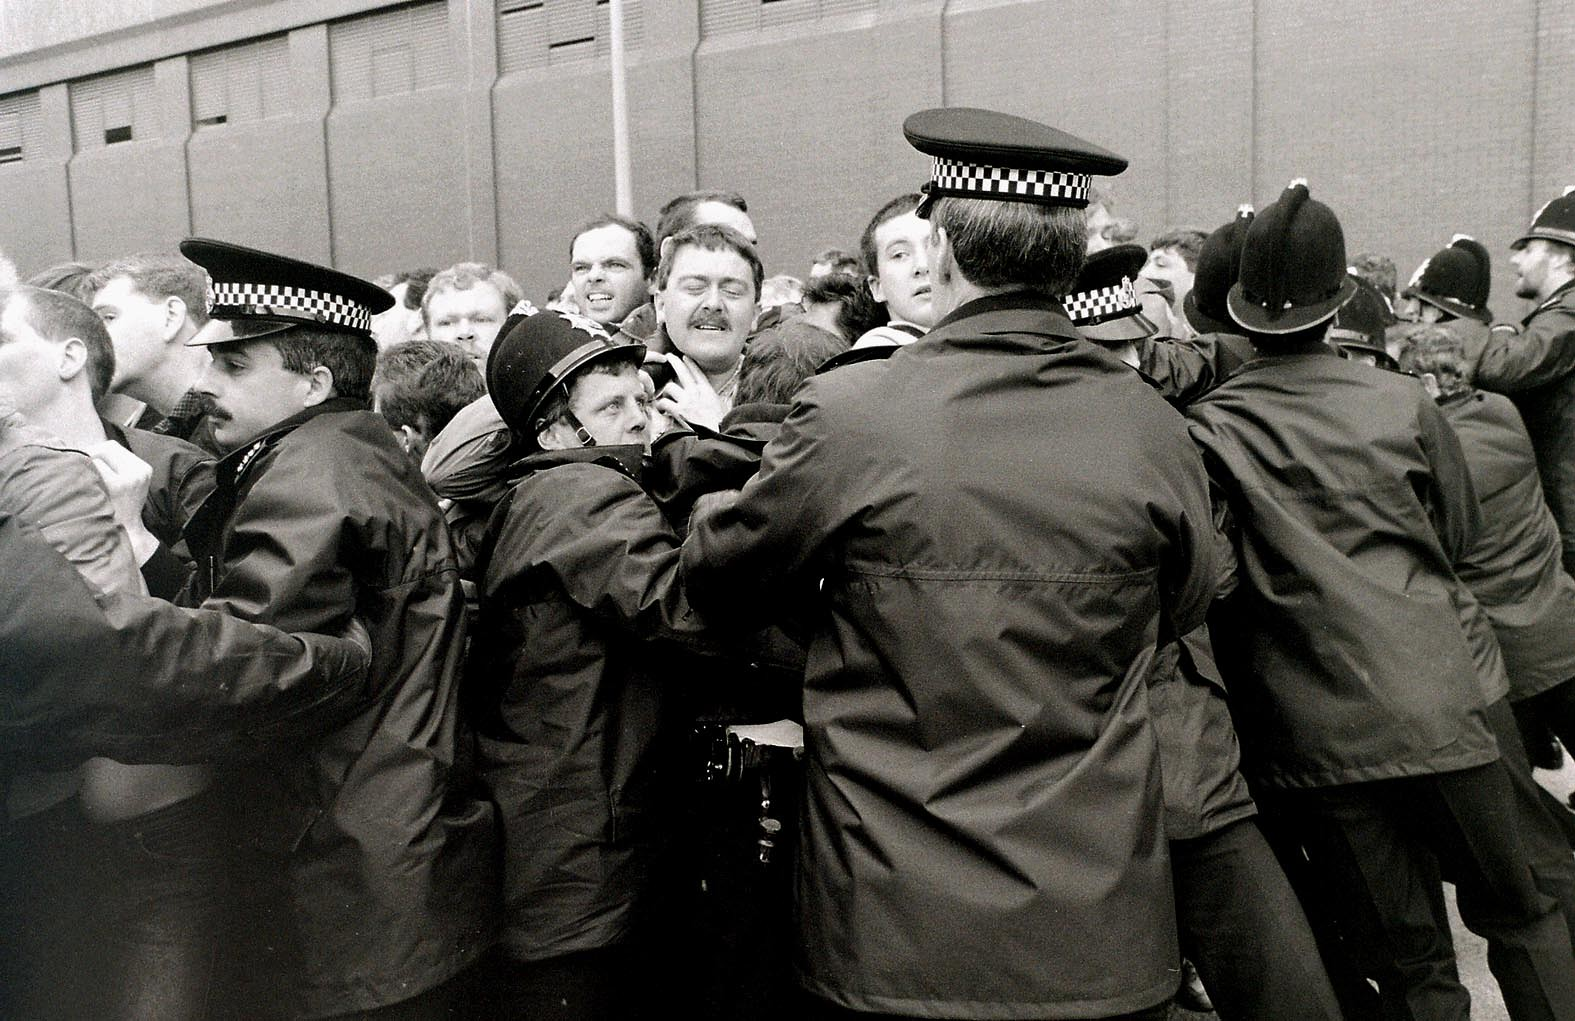 Copperas Hill post office protest, Liverpool - 1987